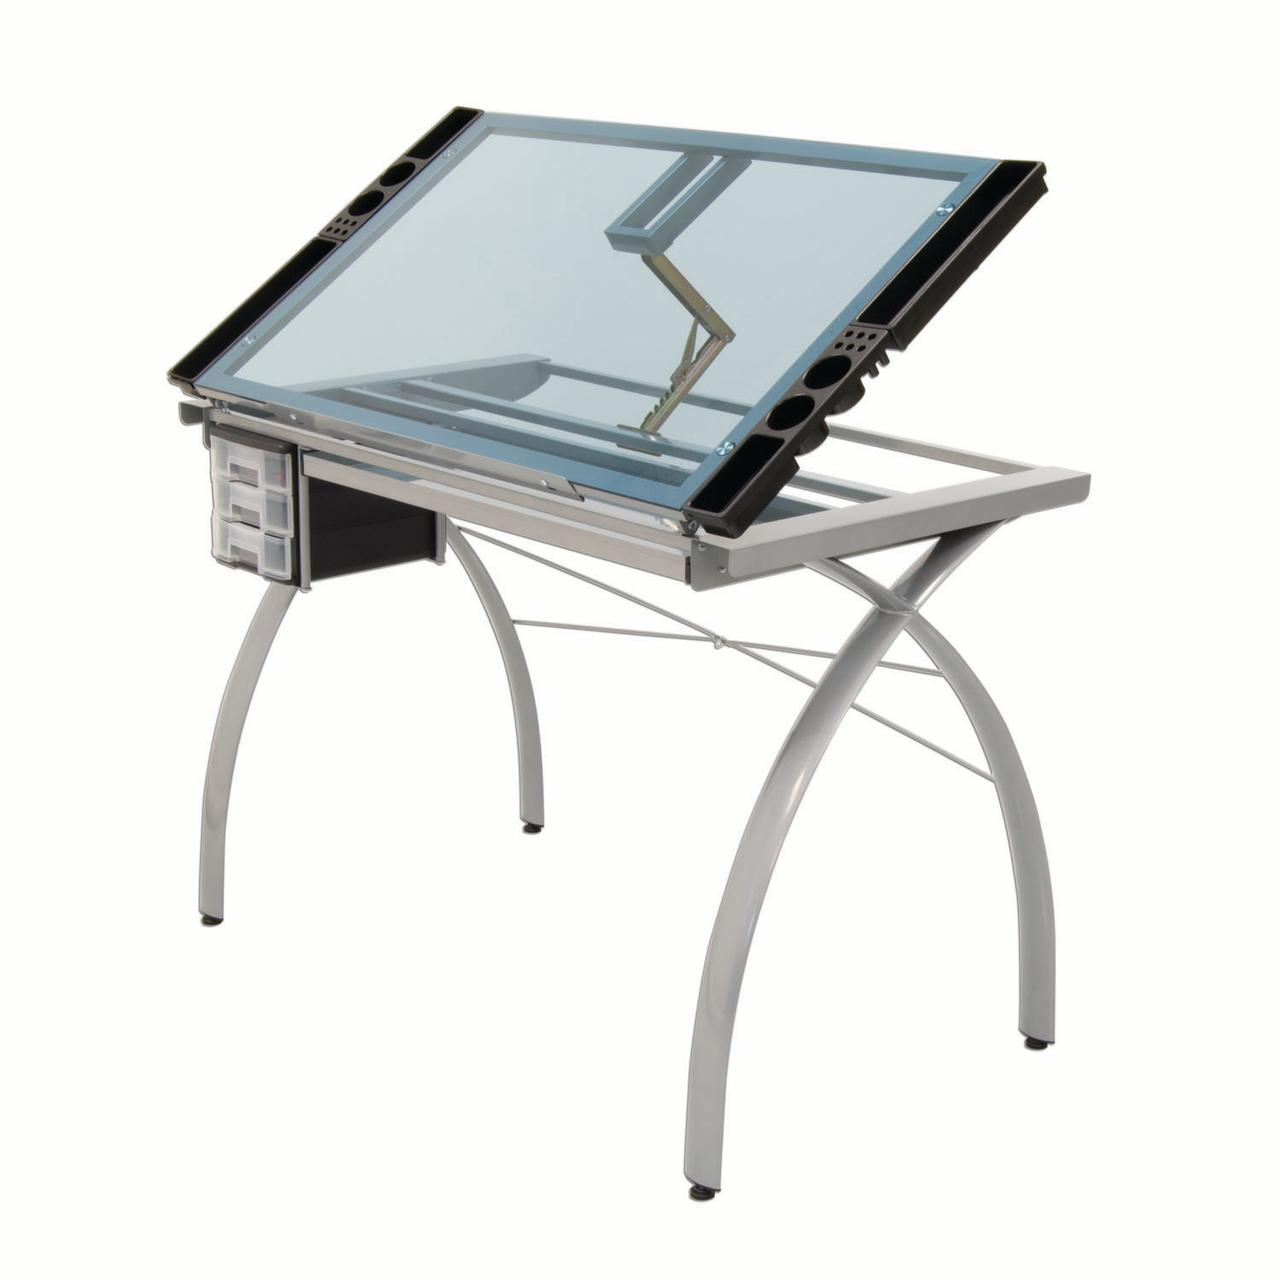 Offex Office Futura Craft Station Drawing / Drafting Table   Silver / Blue  Glass